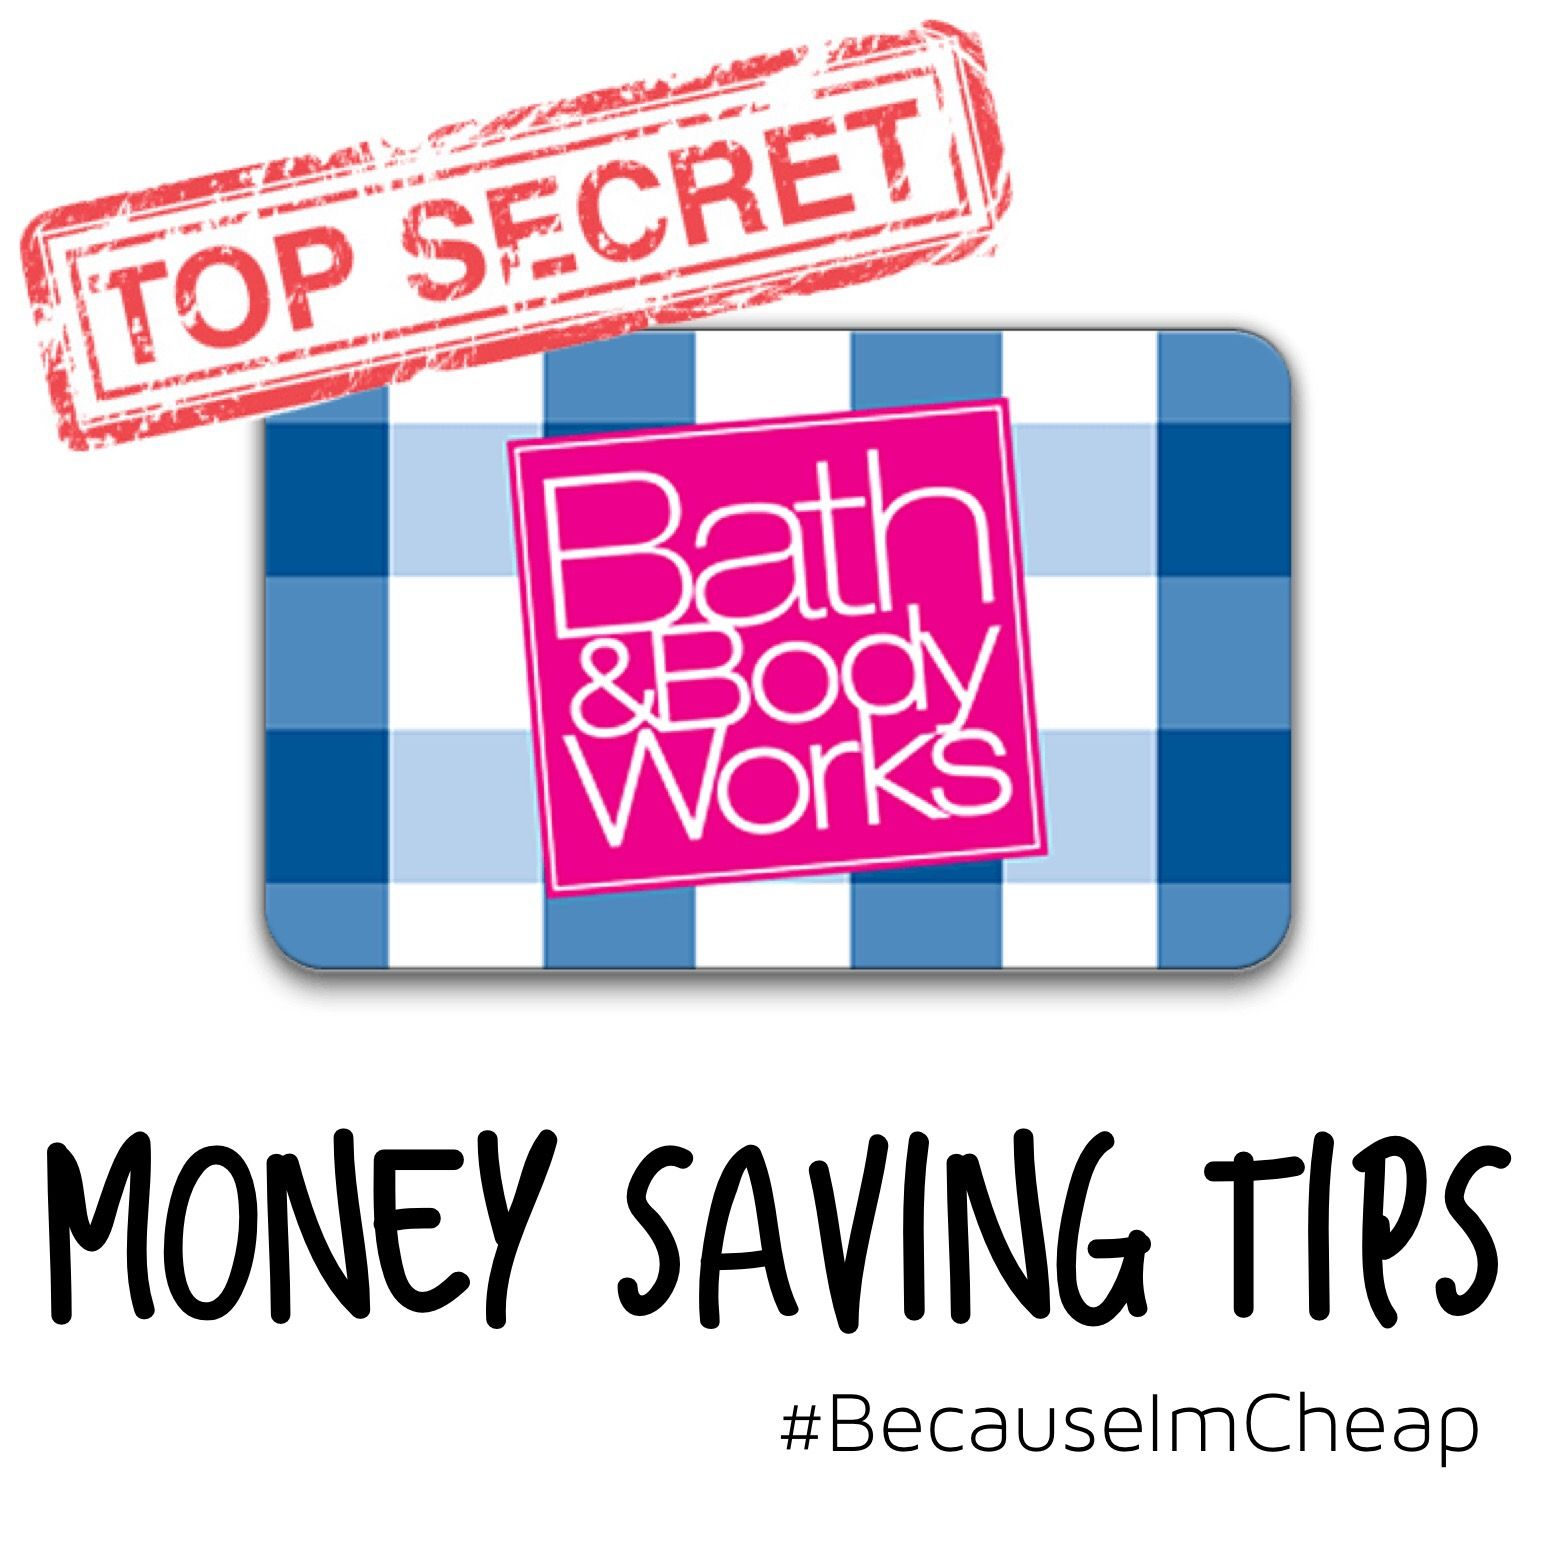 Top Secret Tips To Save Money At Bath And Body Works With Images